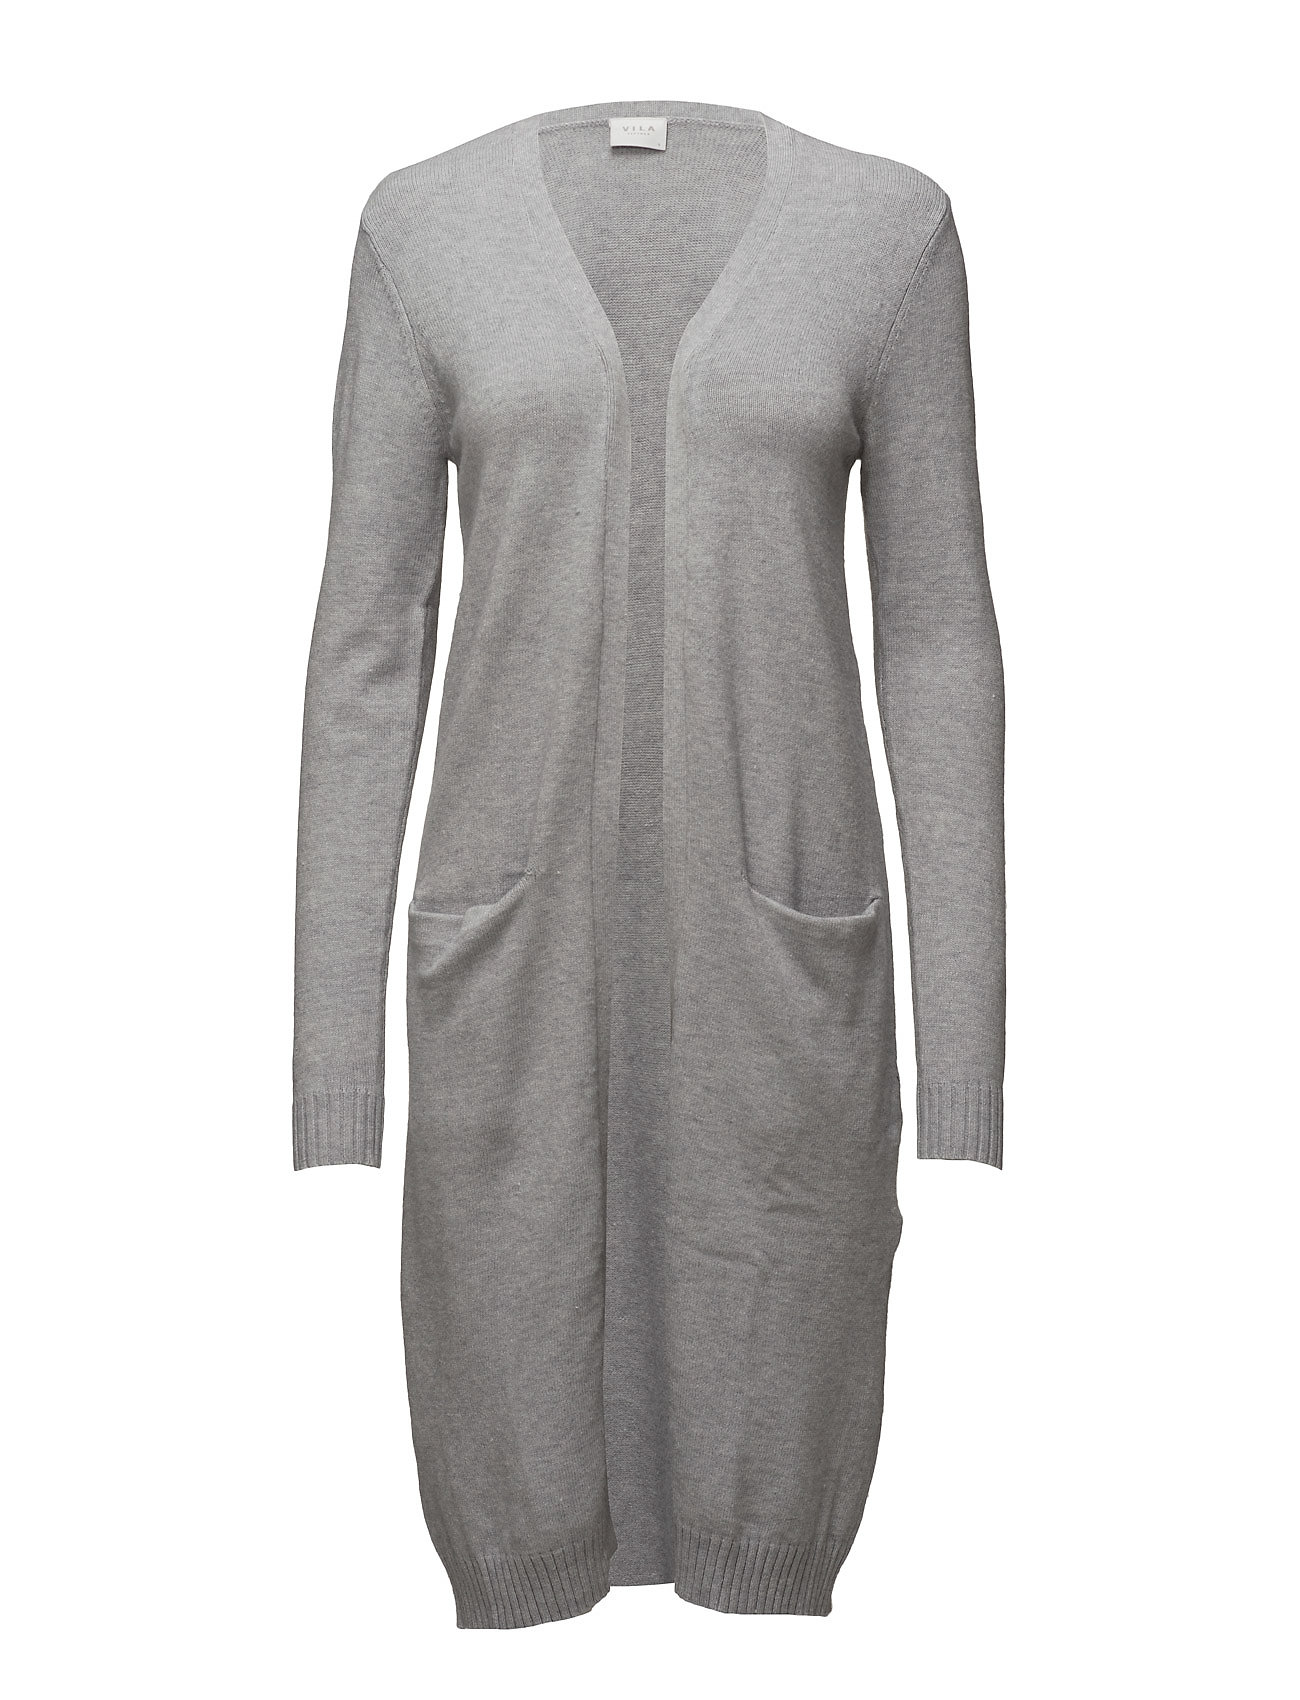 Viril L/s Long Knit Cardigan-noos (Light Grey Melange) (£30 ...